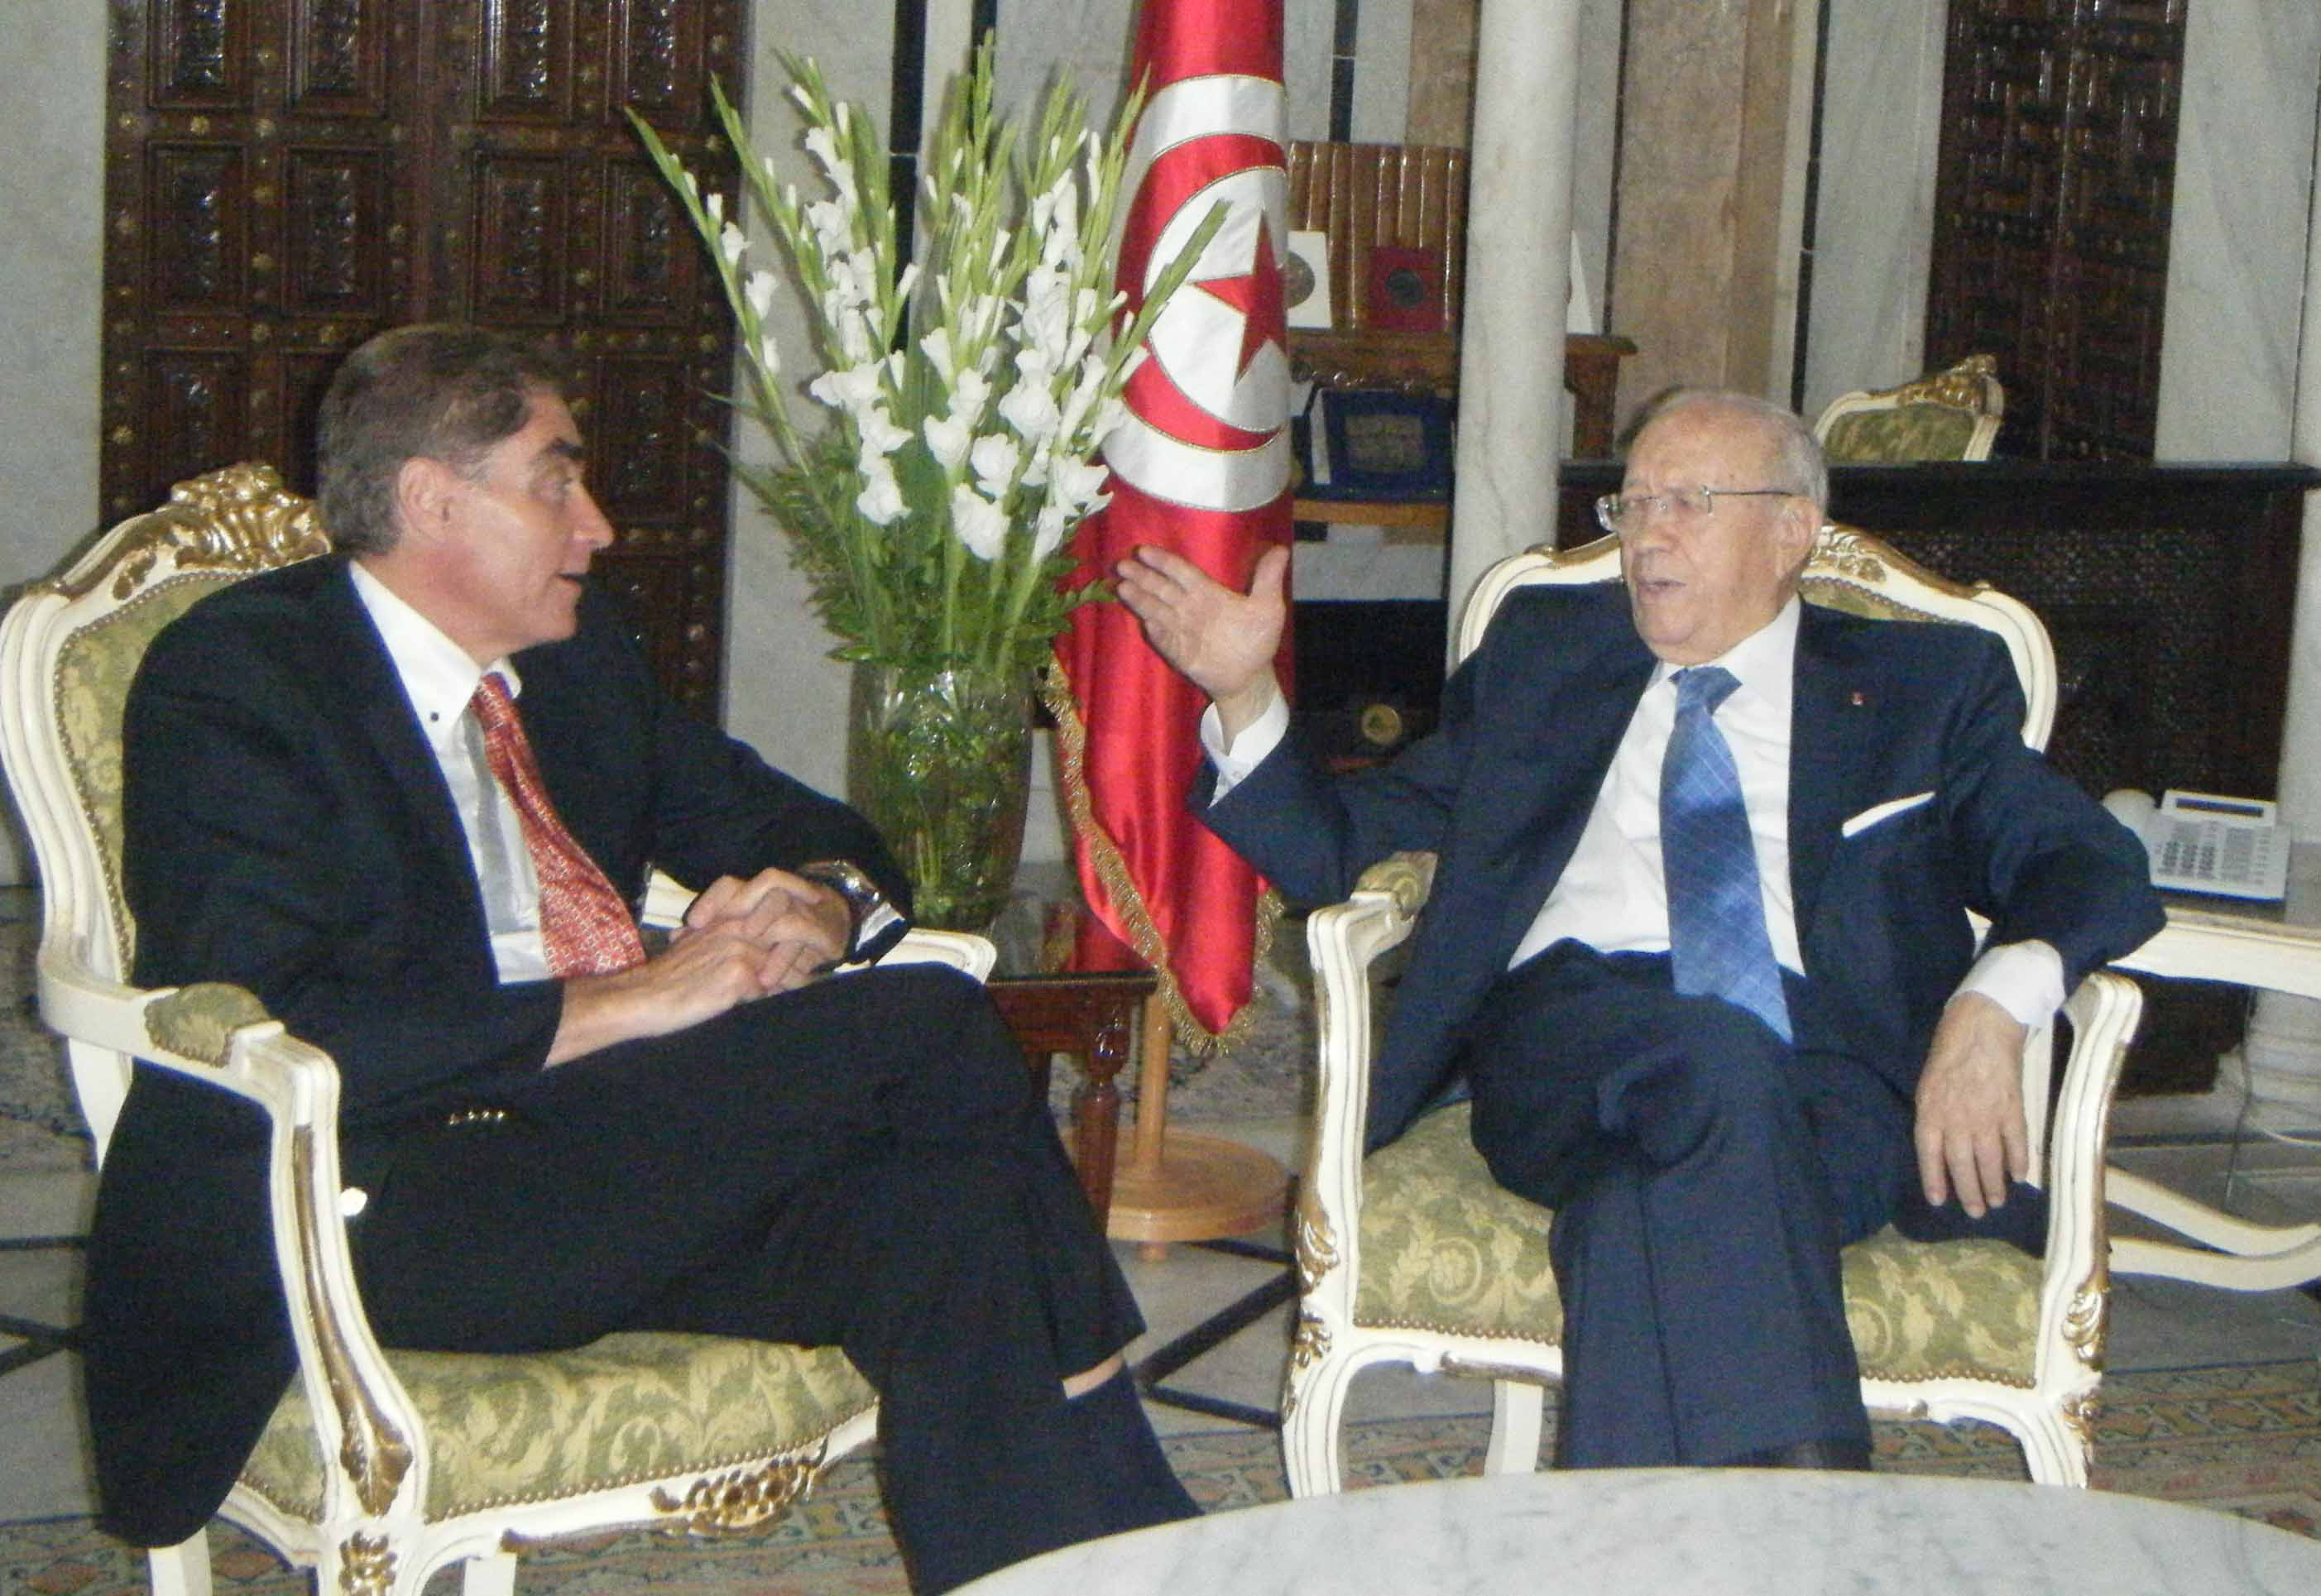 Petre Roman Meets with Tunisian Prime Minister to Support Democratic, Peaceful and Inclusive Transition